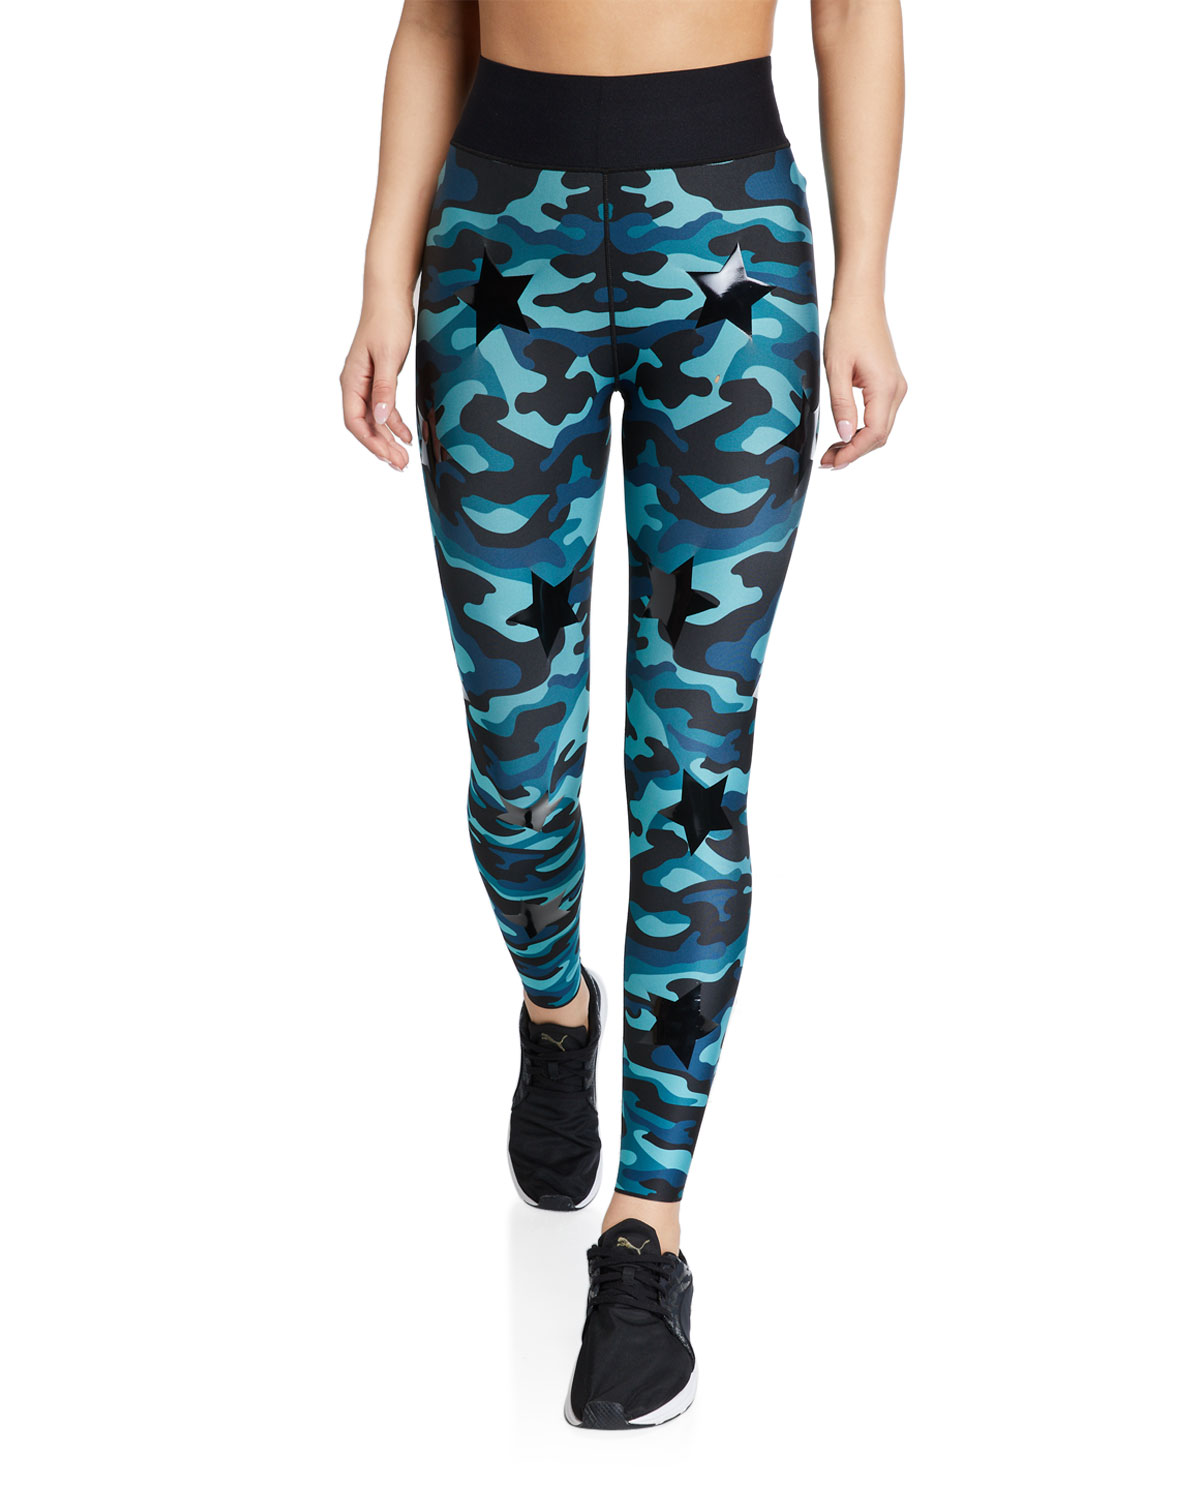 Ultracor KNOCKOUT CAMO ULTRA HIGH-WAIST LEGGINGS